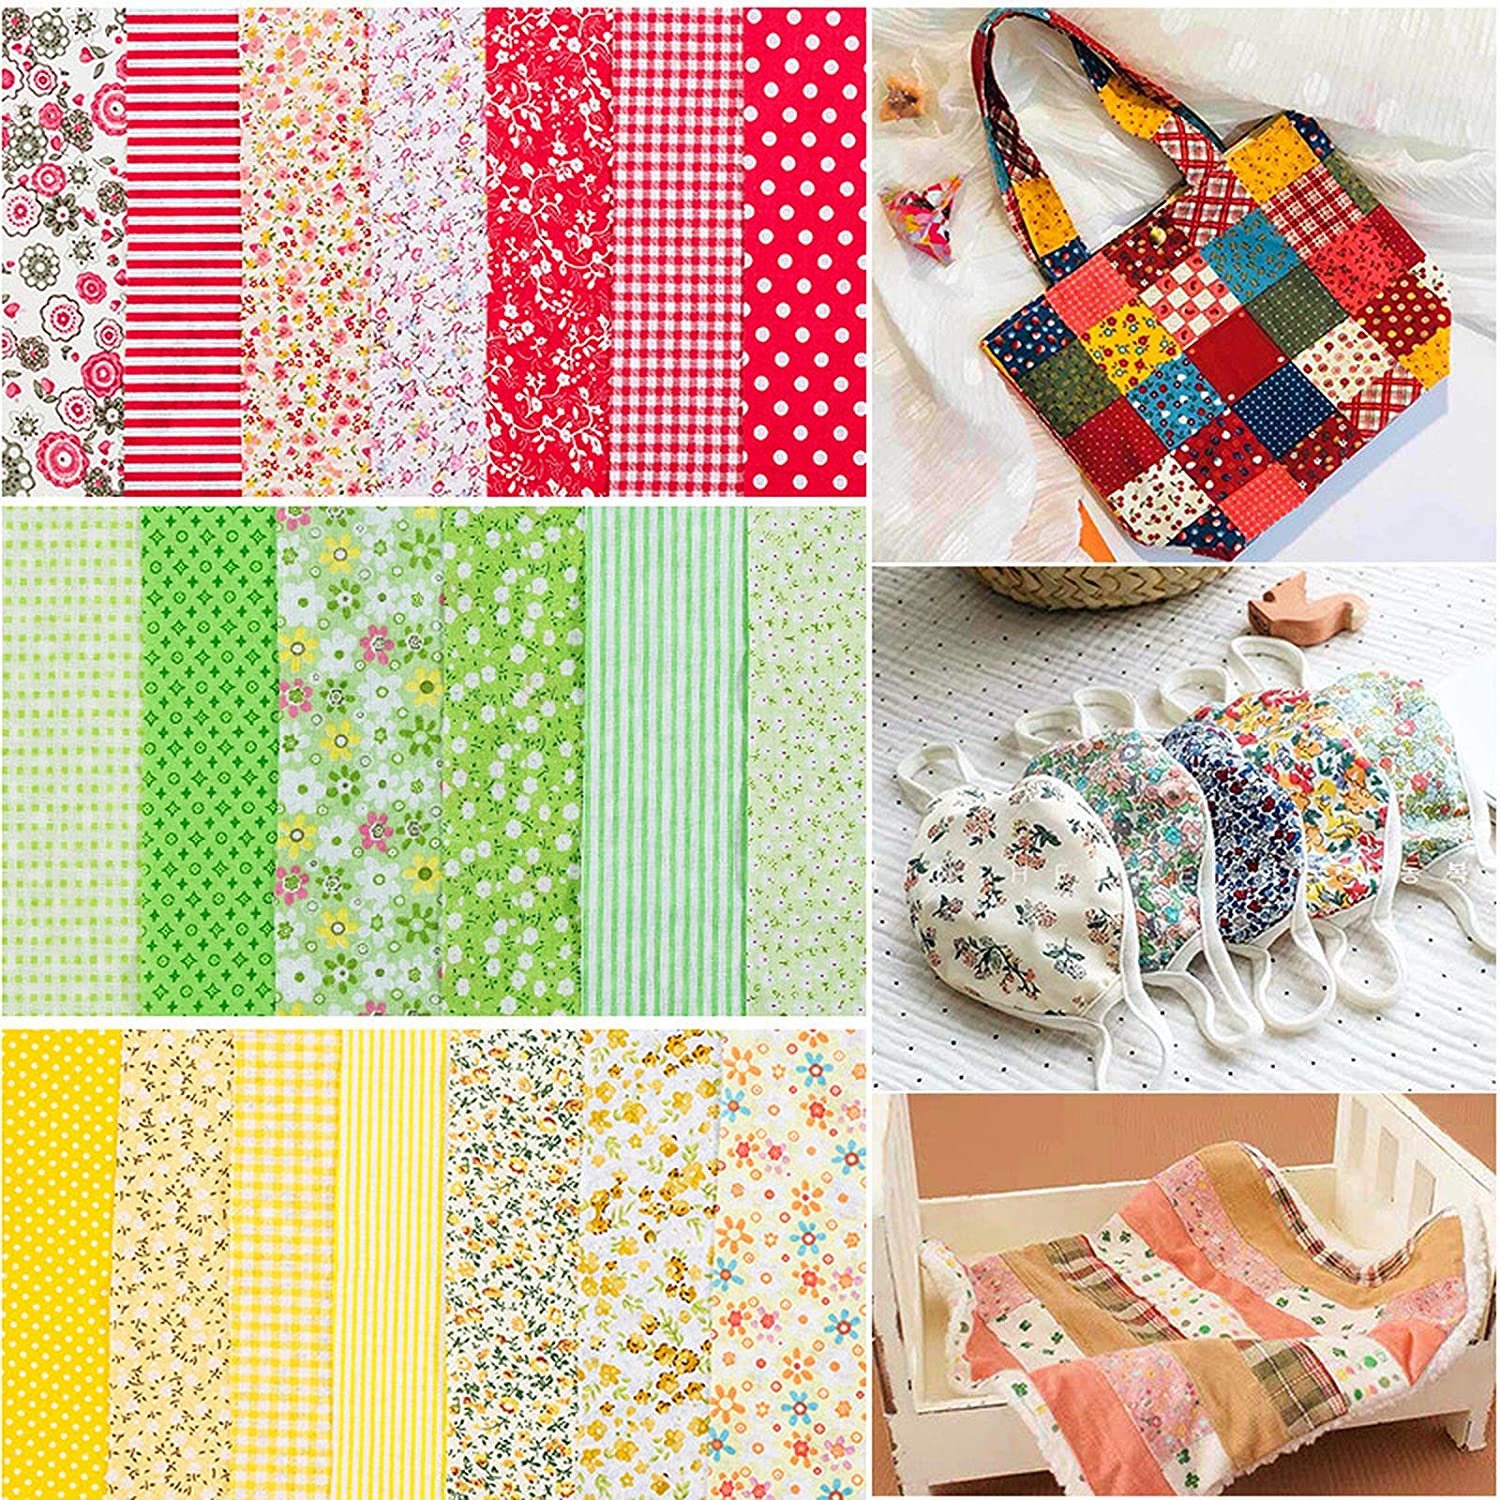 100/% Cotton - 25cm x 24cm Squares Sheets Printed Floral Sewing Supplies for Patchwork Sewing DIY Crafting Quilting 77pcs Quilting Cotton Craft Fabric Bundle